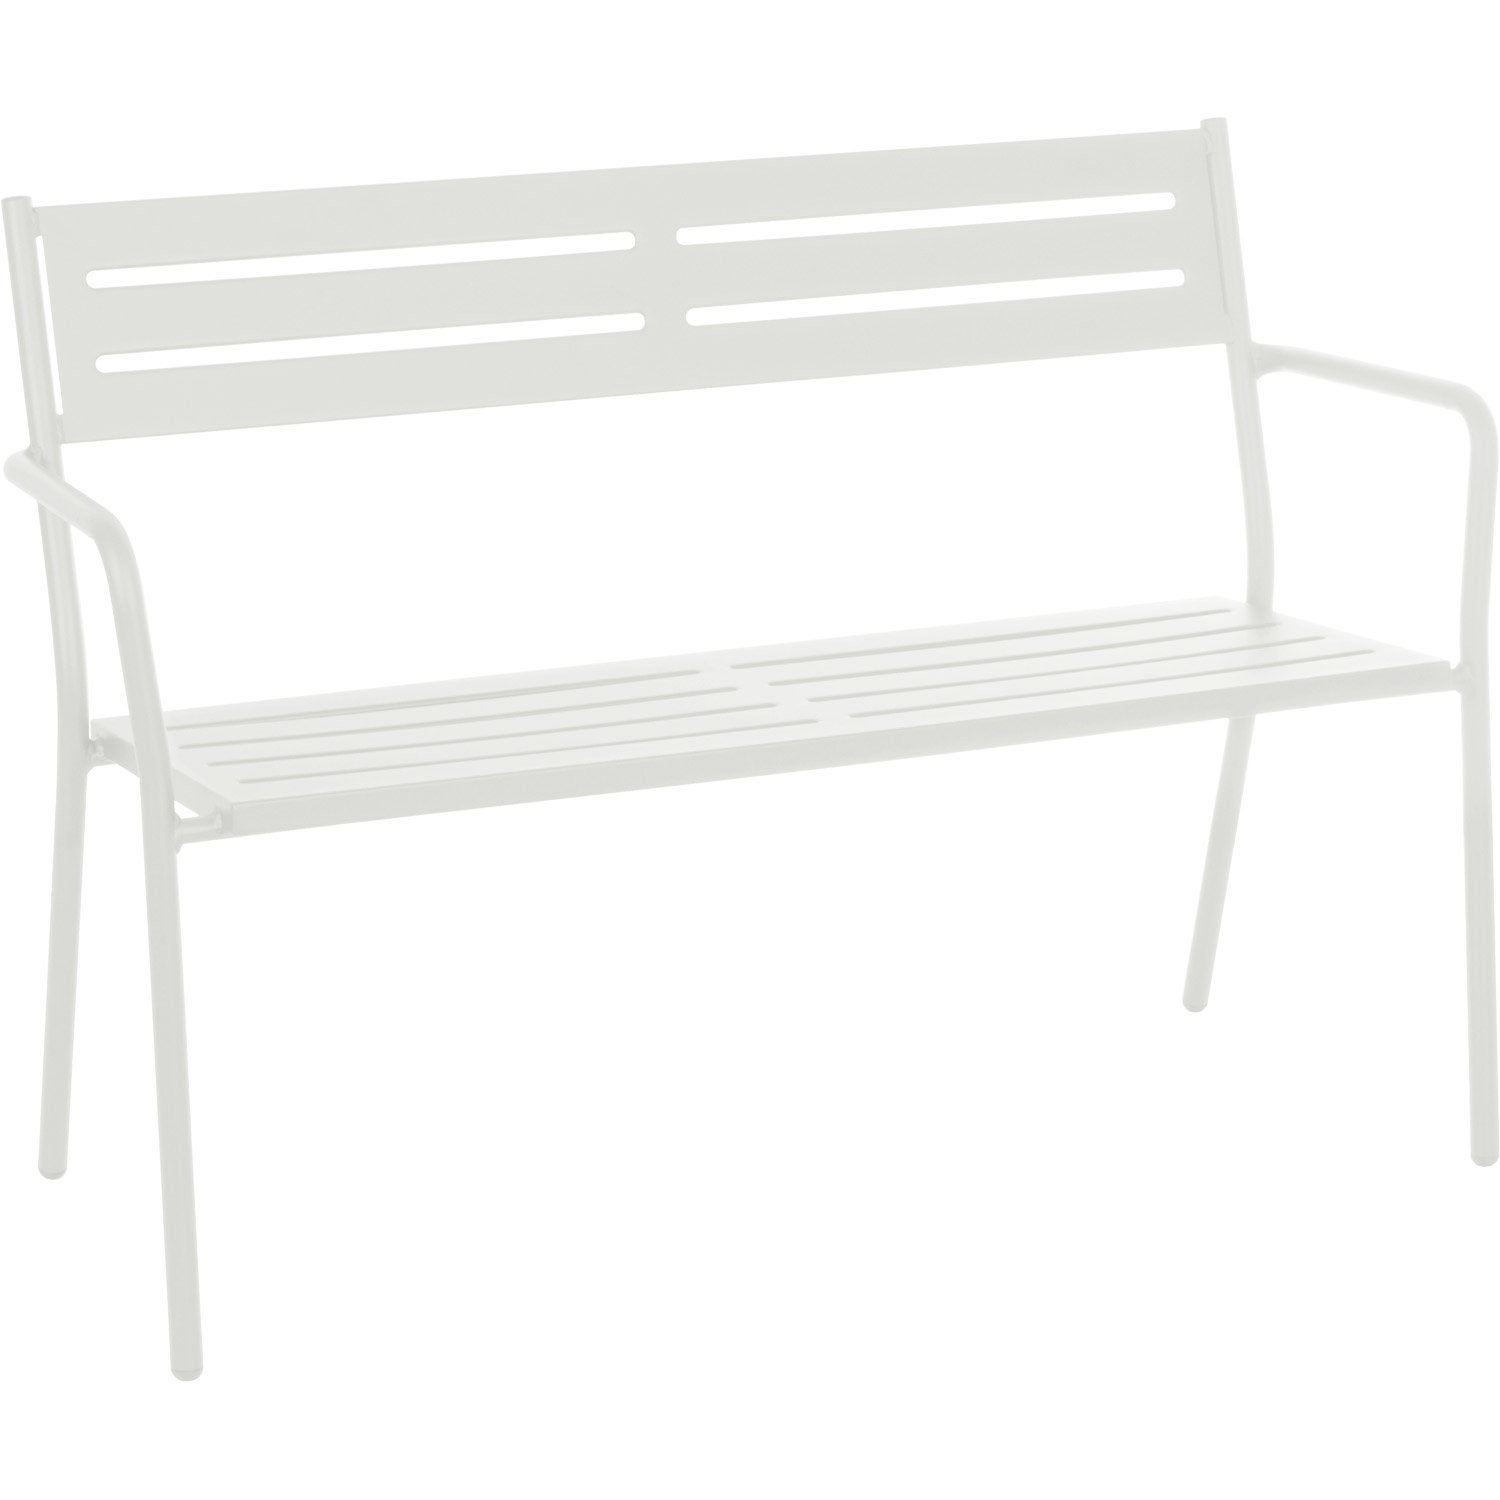 banc 2 places de jardin en acier trevi blanc leroy merlin. Black Bedroom Furniture Sets. Home Design Ideas